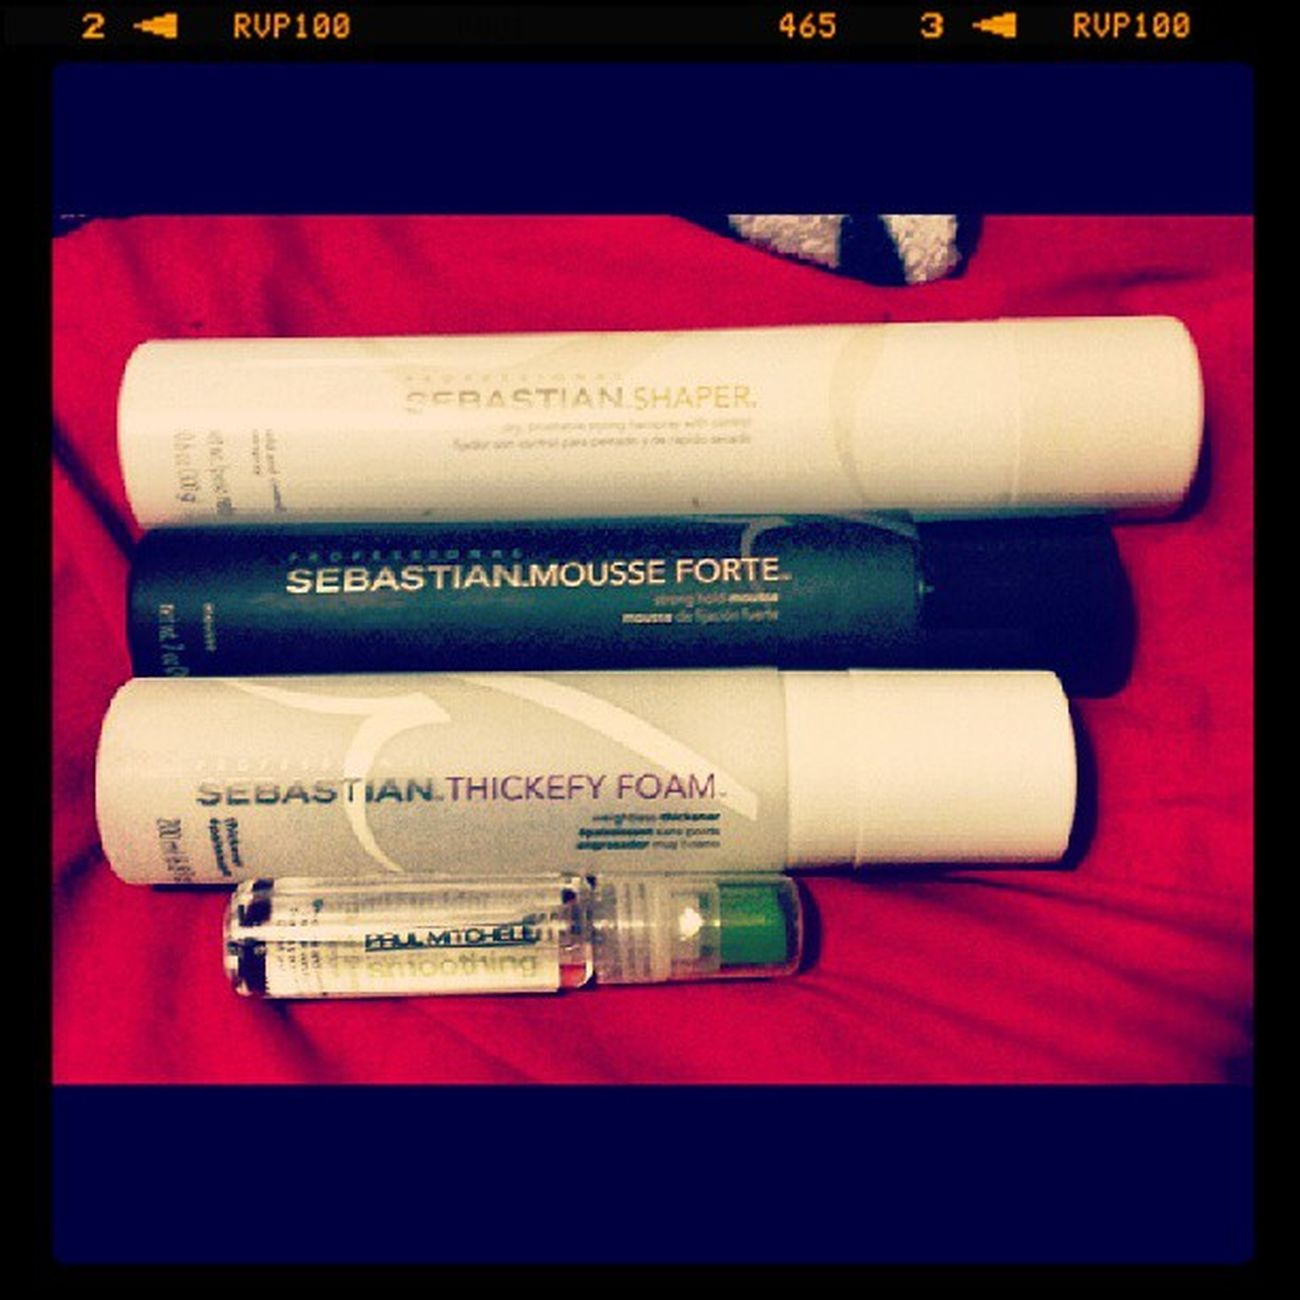 Im beginning my journey of being a product junky...I aint ashamed of it :) Cosmetologist  Hairstylist Beautyconsultant Capitoldoll sebastian paulmitchell sebastianshaper sebastianmousseforte sebastianthickefyfoam paulmitchellsuperskinnyserum